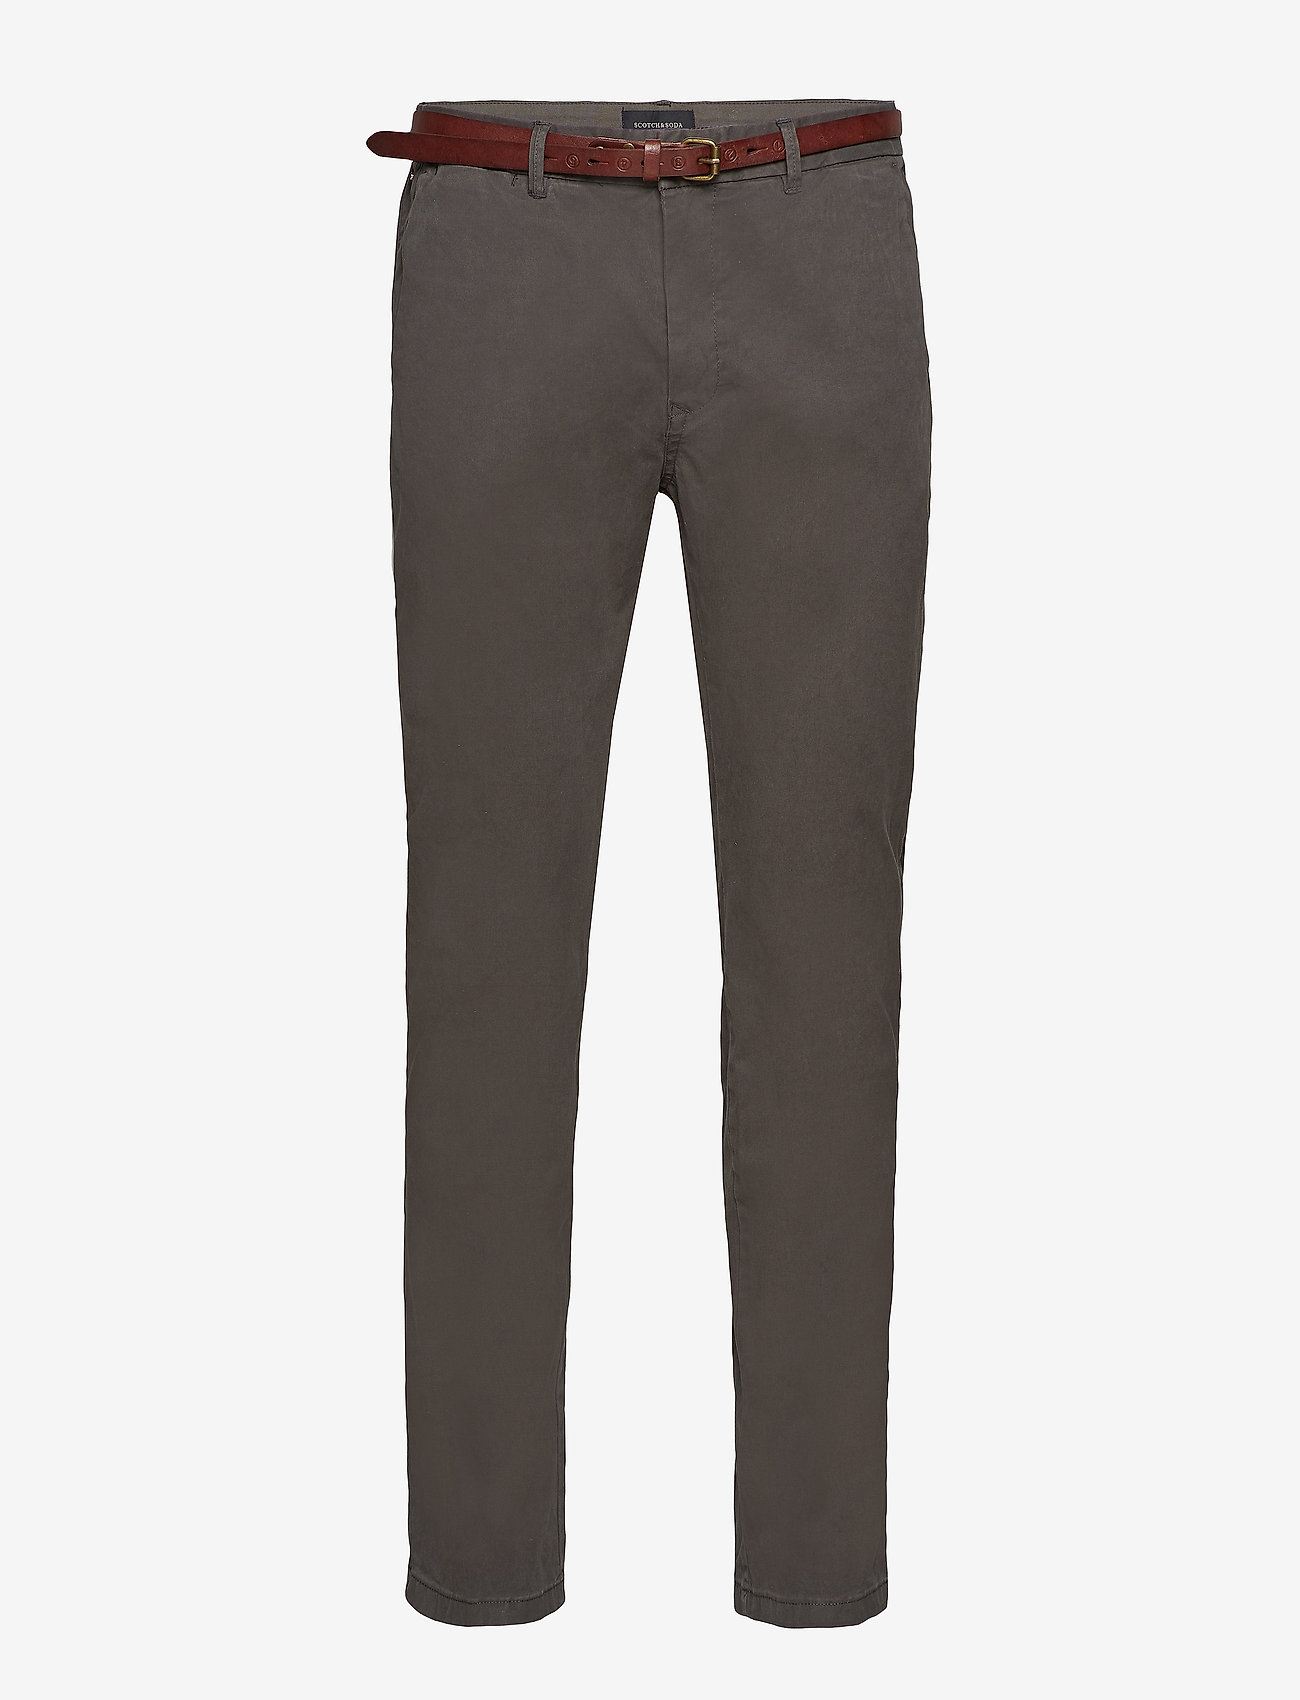 Scotch & Soda - Slim fit cotton/elastan garment dyed chino pant - chinos - charcoal - 0